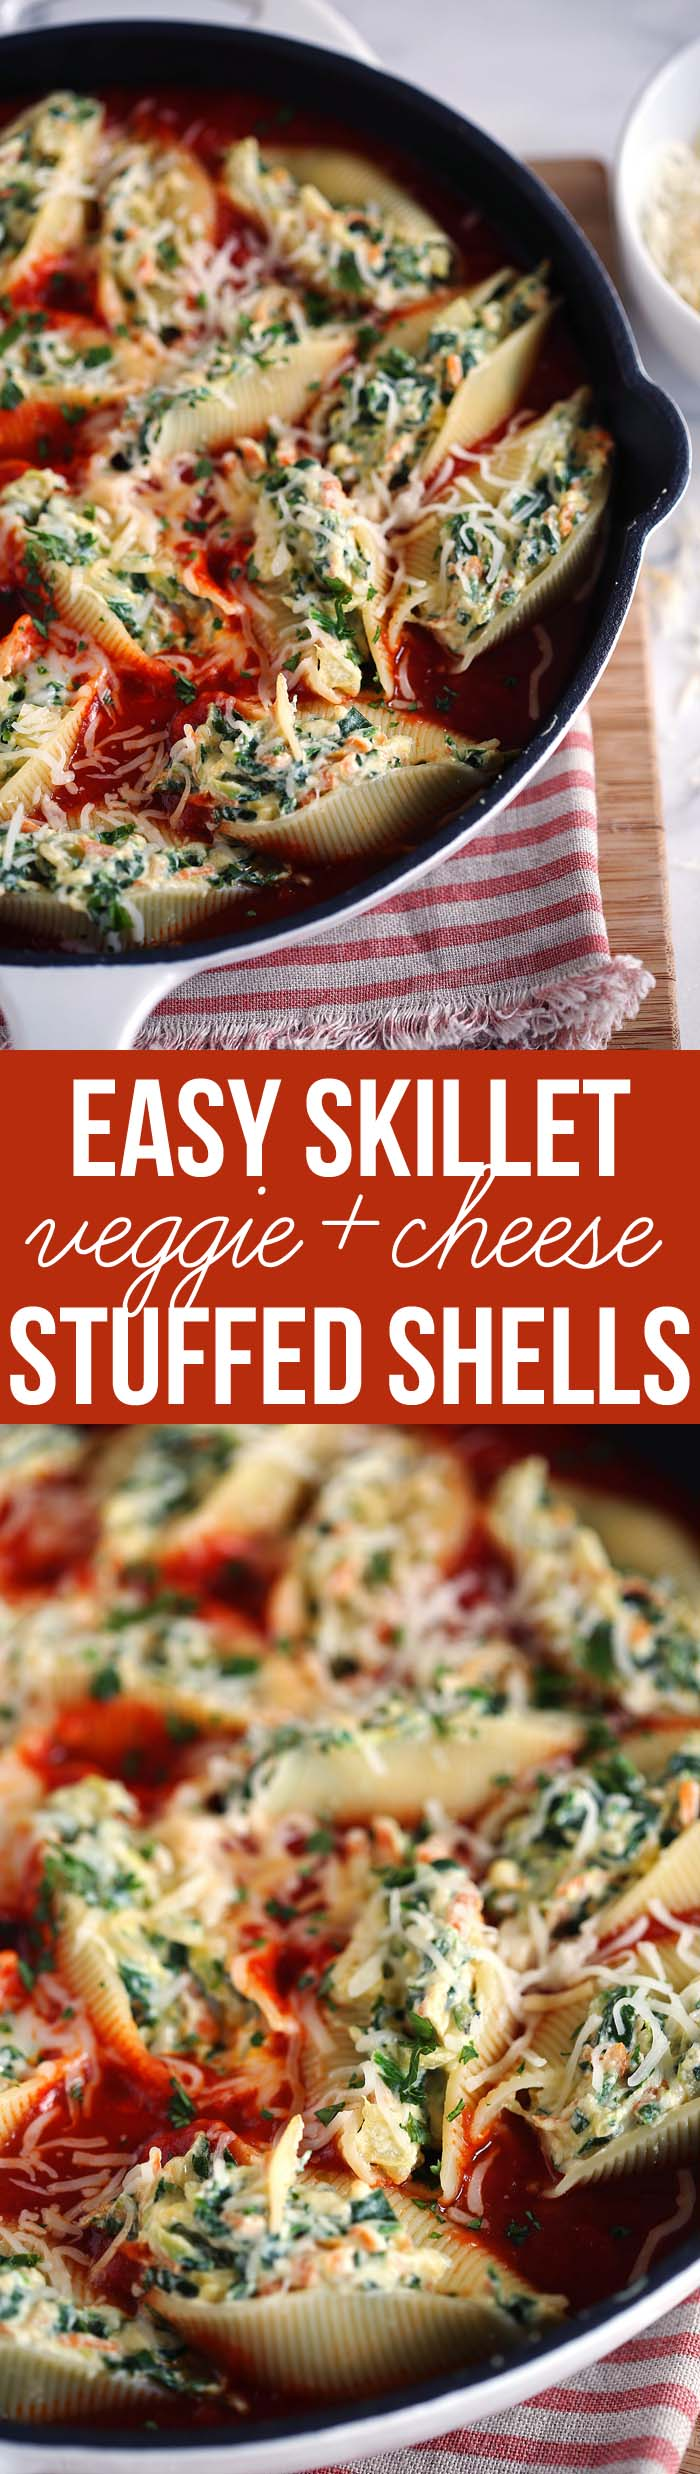 Our family's FAVORITE Skillet Veggie and Cheese Stuffed Shells - the perfect weeknight meal that is delicious and easy to freeze! eat-yourself-skinny.com